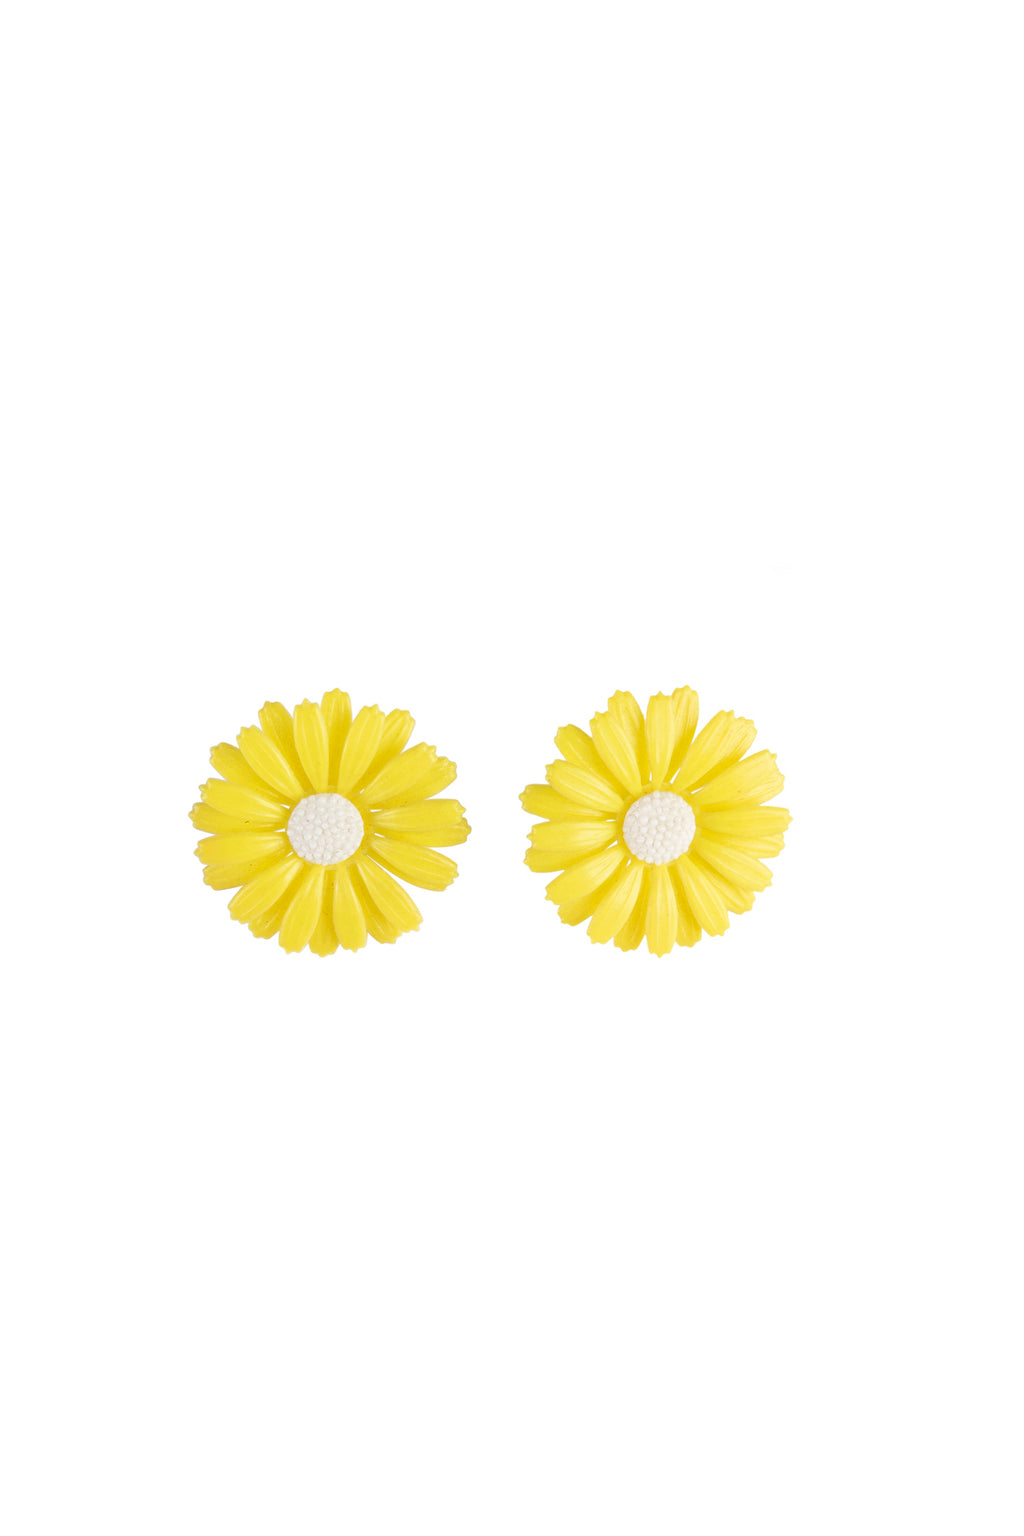 Daisy Yellow Clip On Vintage Earrings